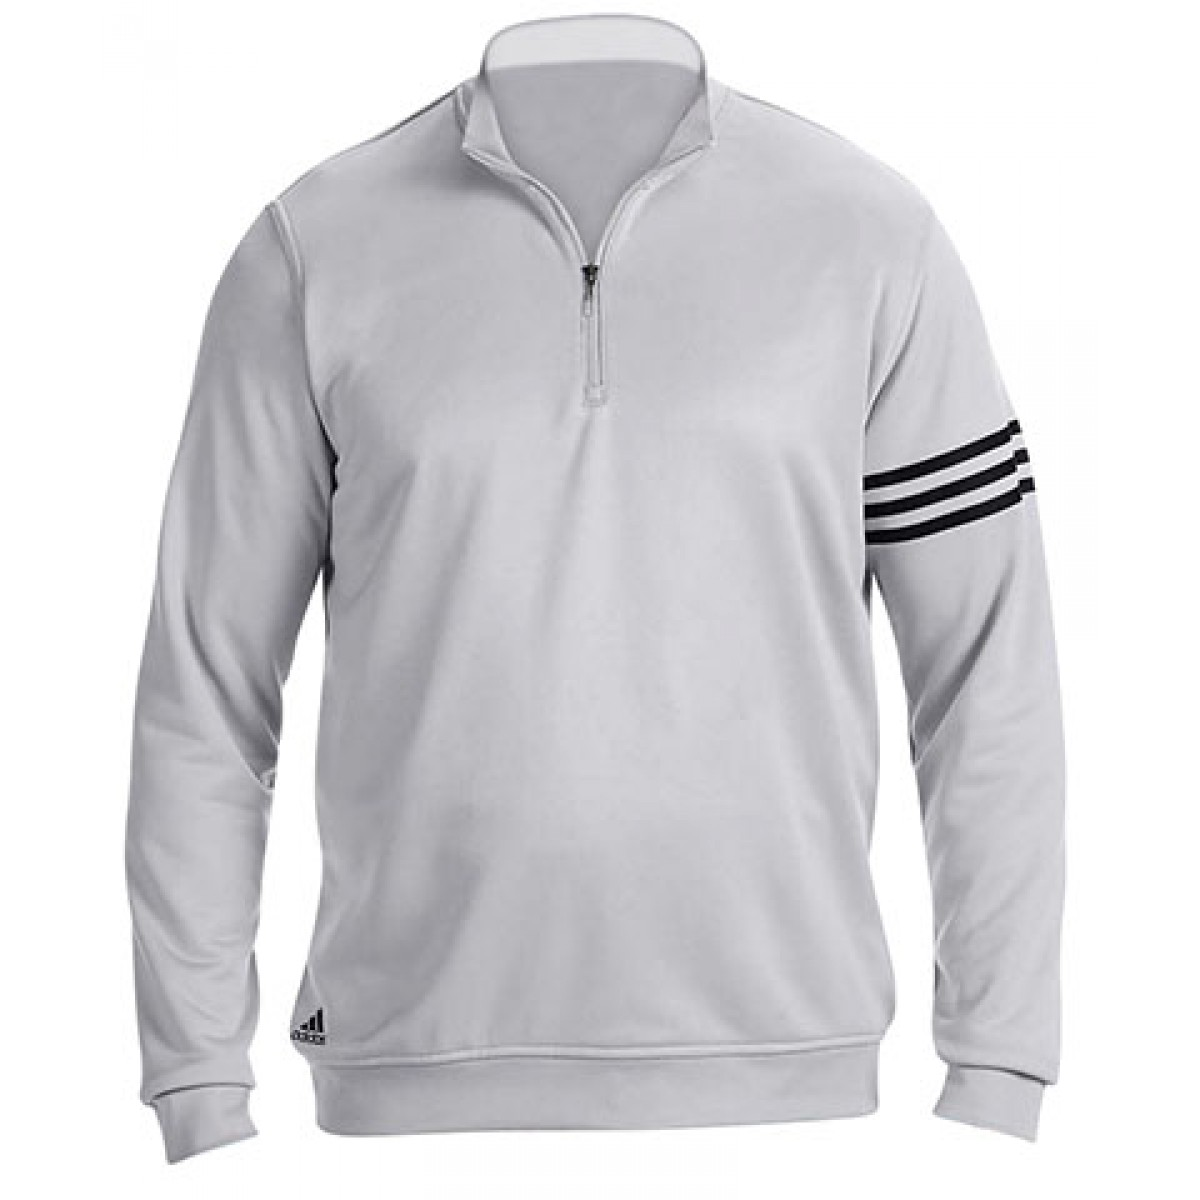 Adidas Men's 3-Stripes Pullover-Gray -M